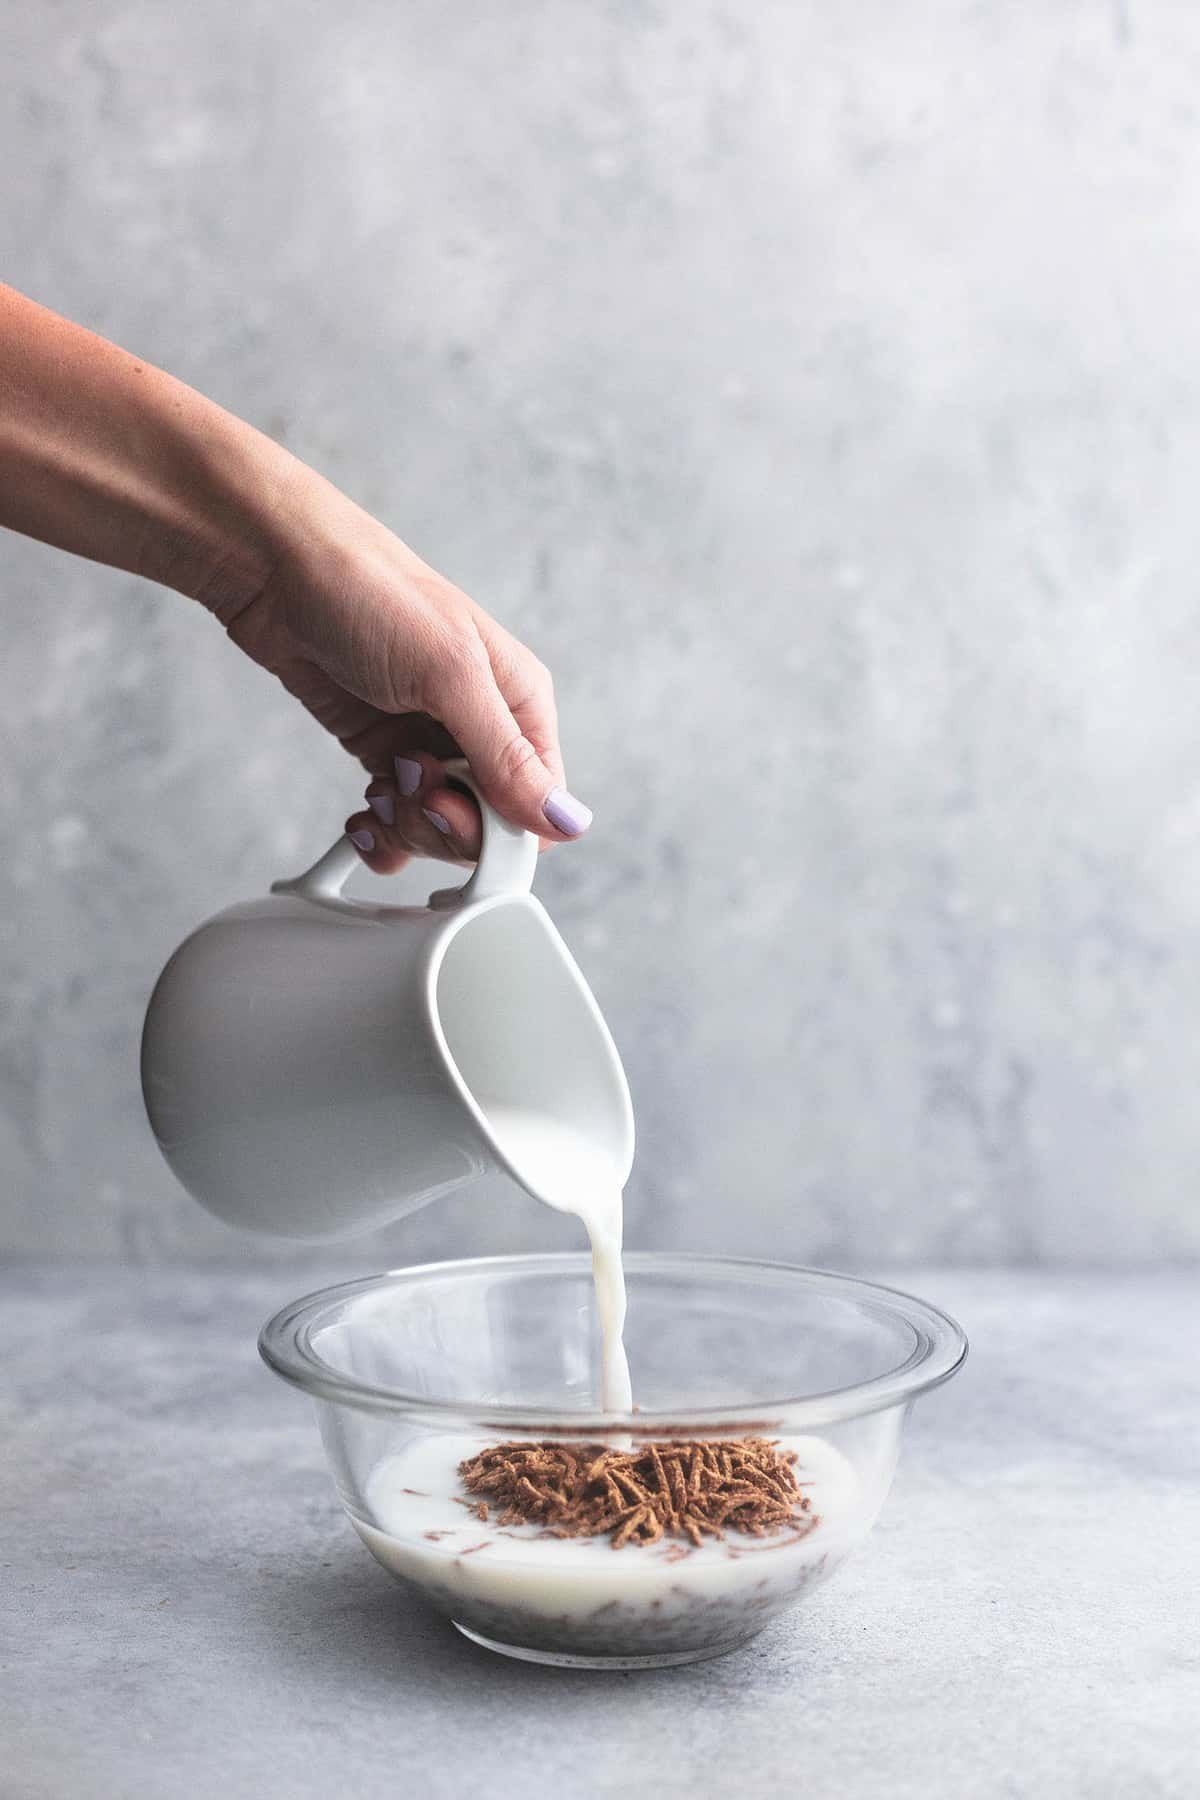 Milk is poured into a bowl of bran cereal